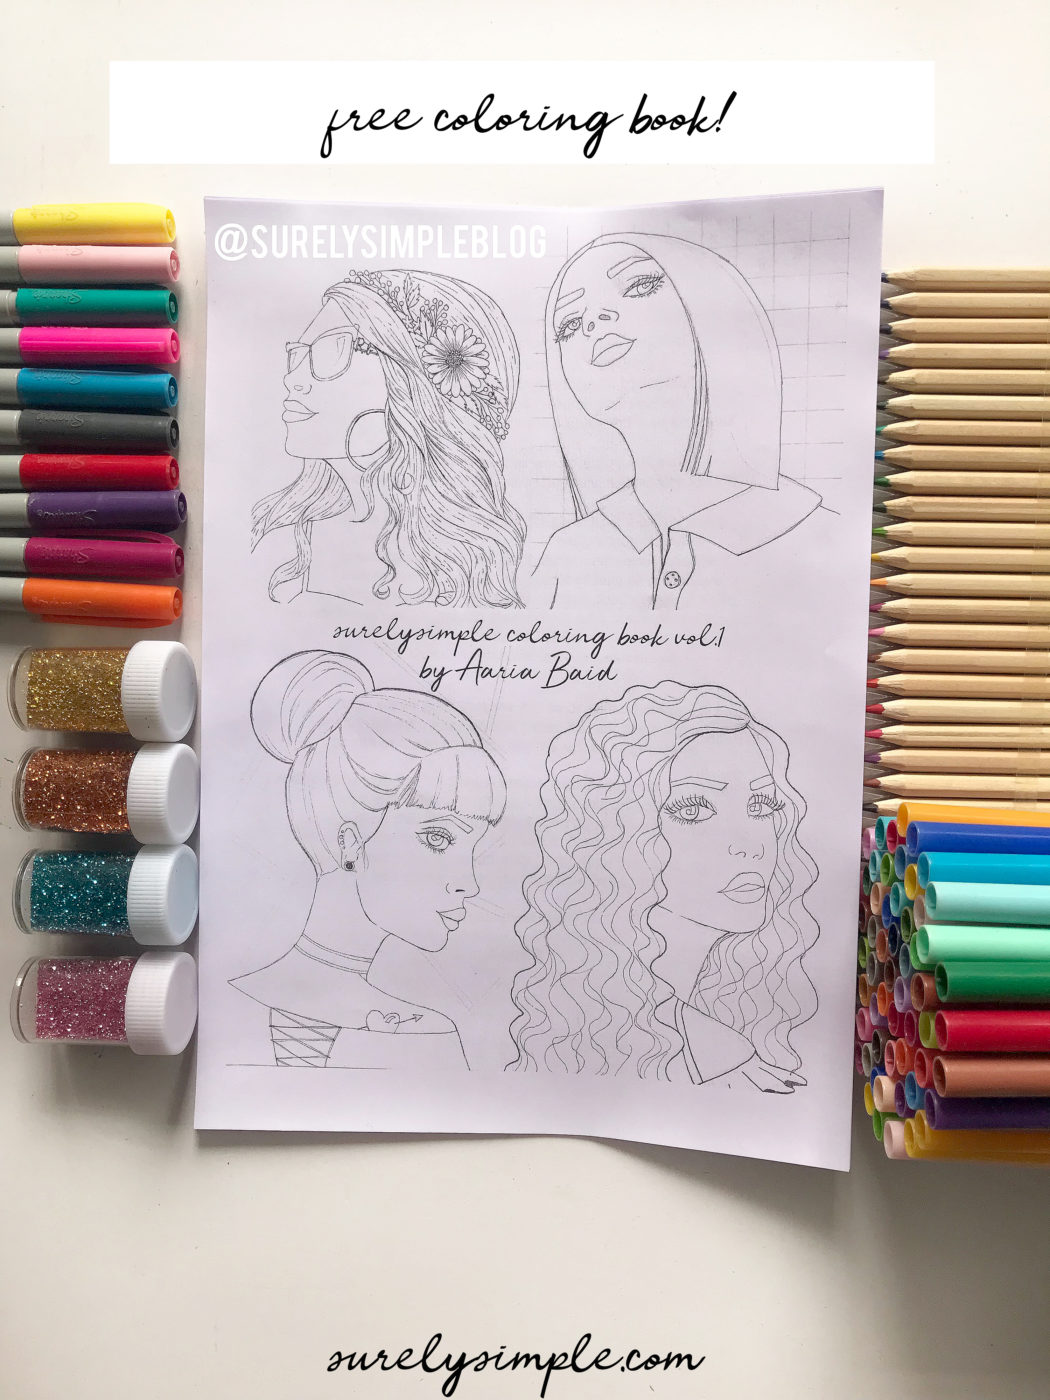 Free Download : Girls Coloring Book vol. 1! surelysimple.com